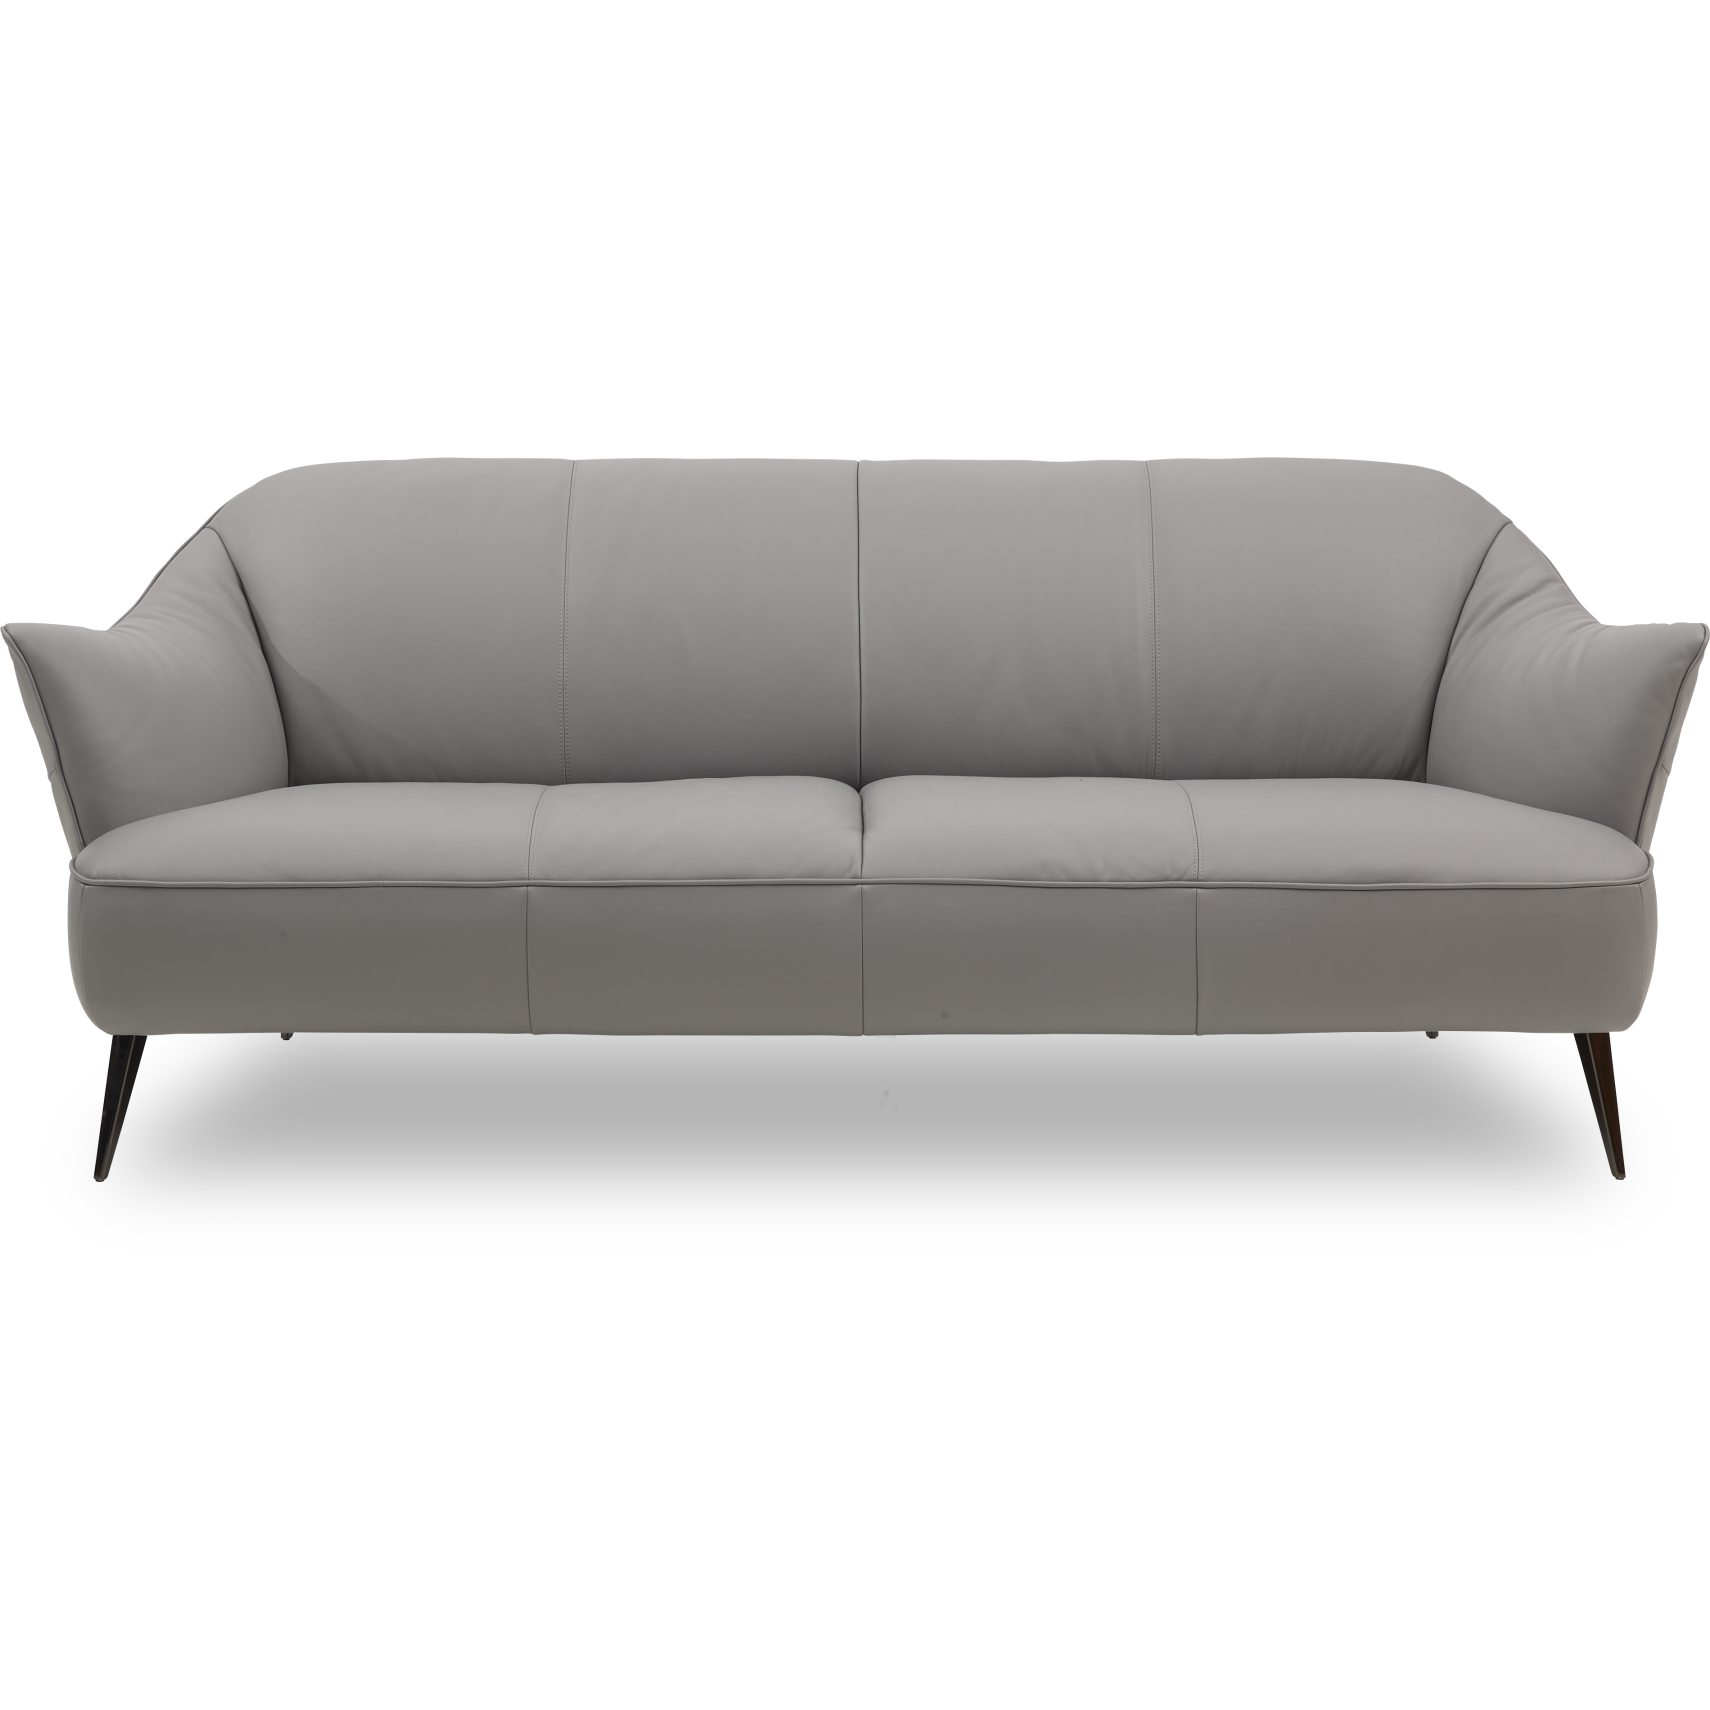 Natuzzi Editions C120 009 3 pers Sofa - Pasadena Light Grey læder og ben i sort krom